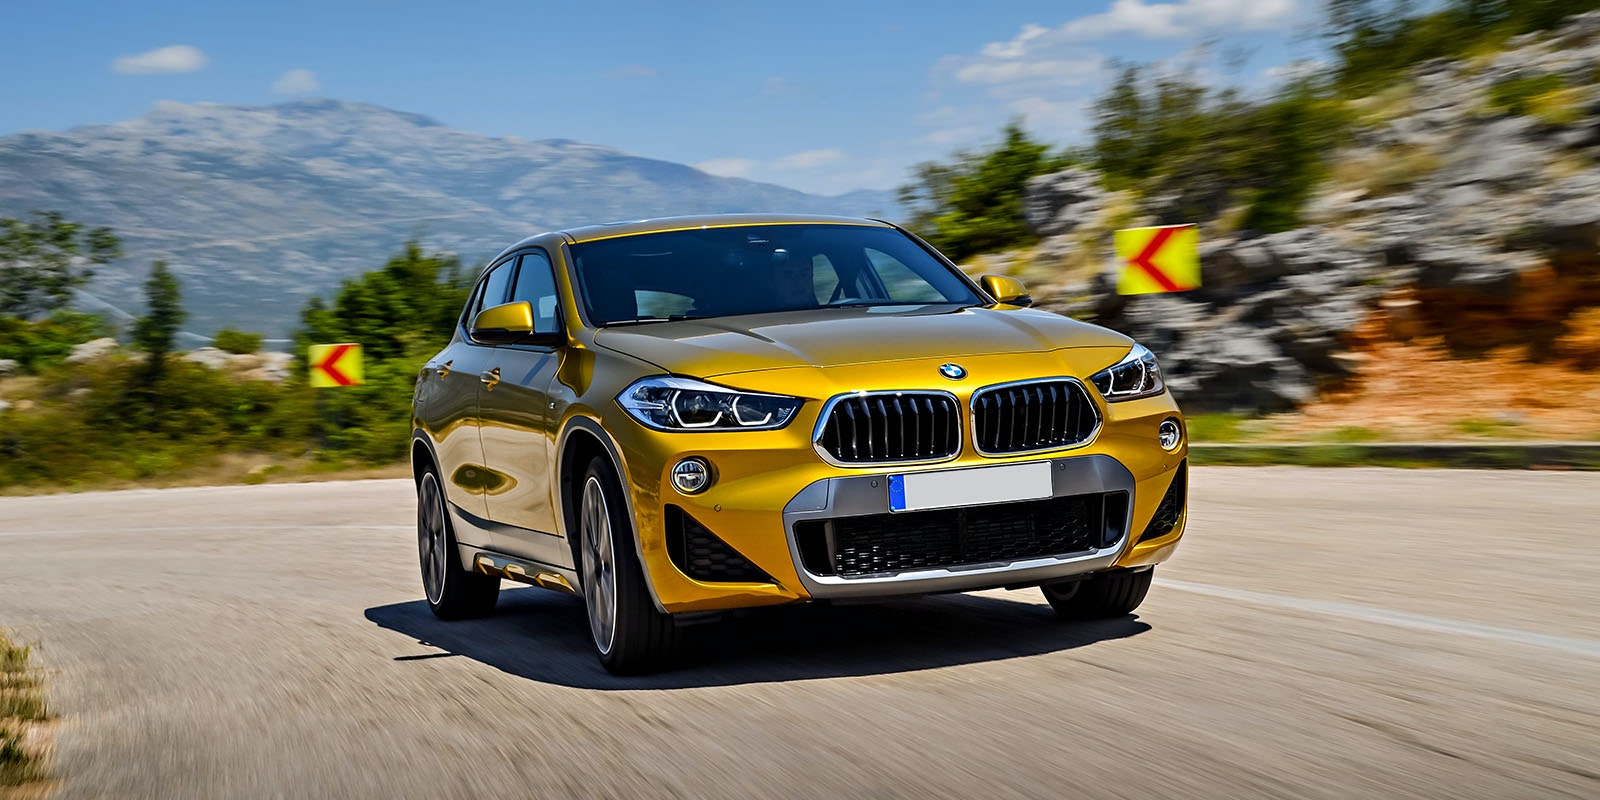 Bmw x2 header 1.jpg?ixlib=rb 1.1